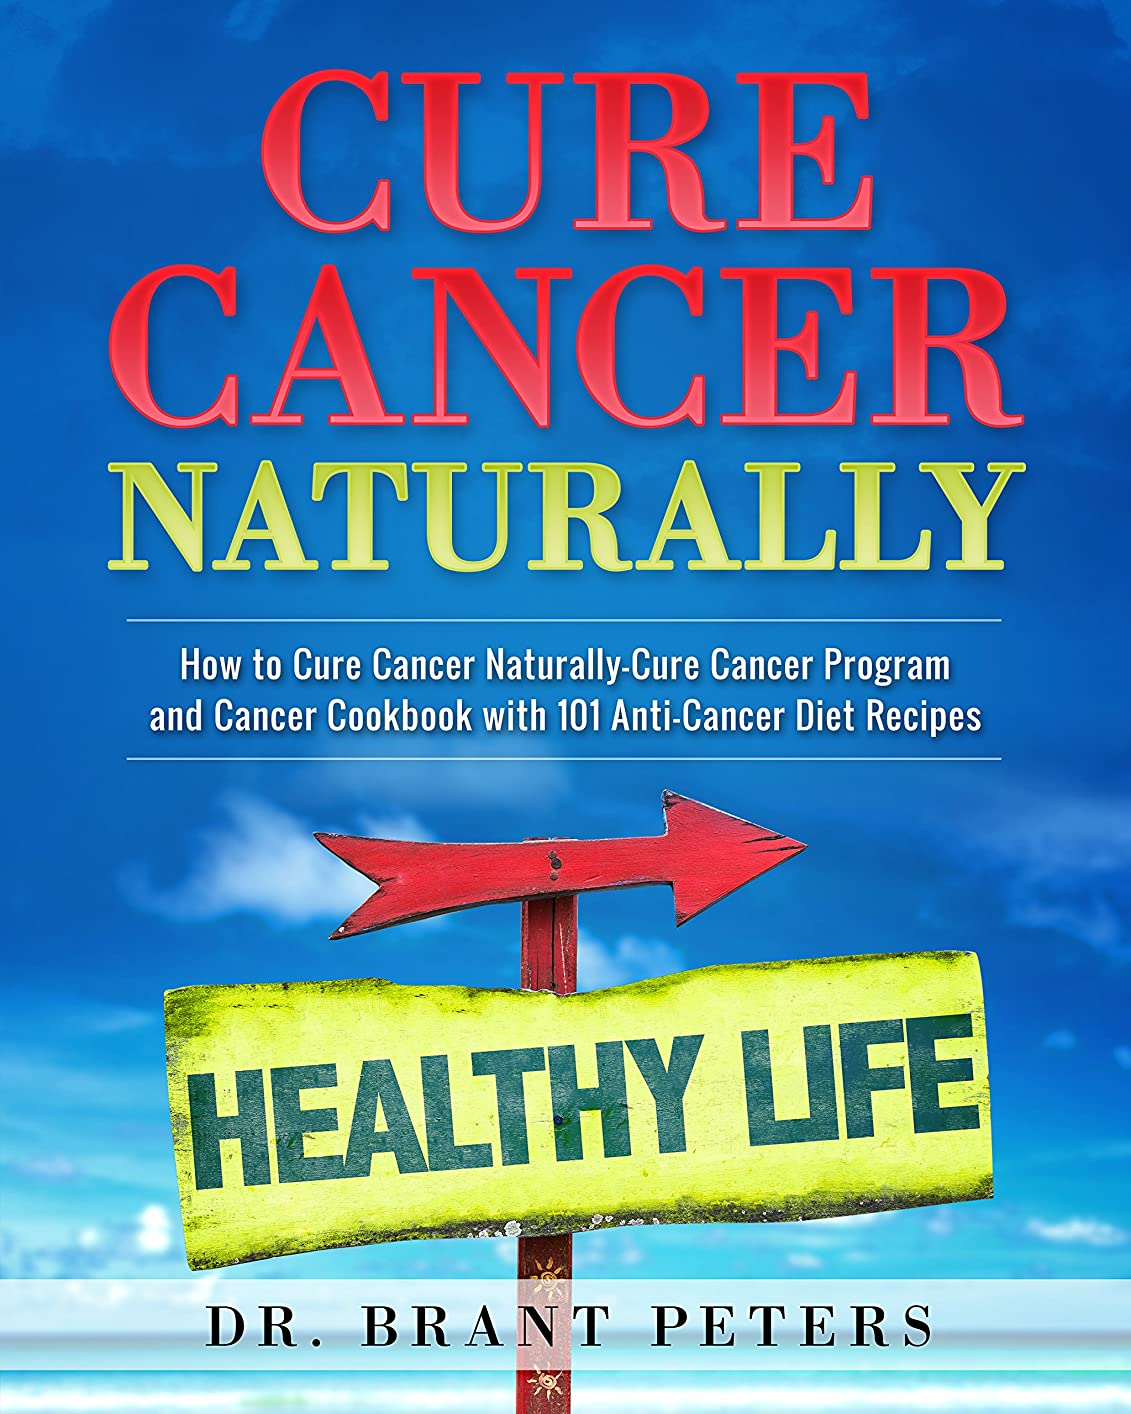 アグネスグレイご近所キノコCure Cancer Naturally: How to Cure Cancer Naturally - Cure Cancer Program and Cancer Cookbook with 101 Anti Cancer Diet Recipes (English Edition)